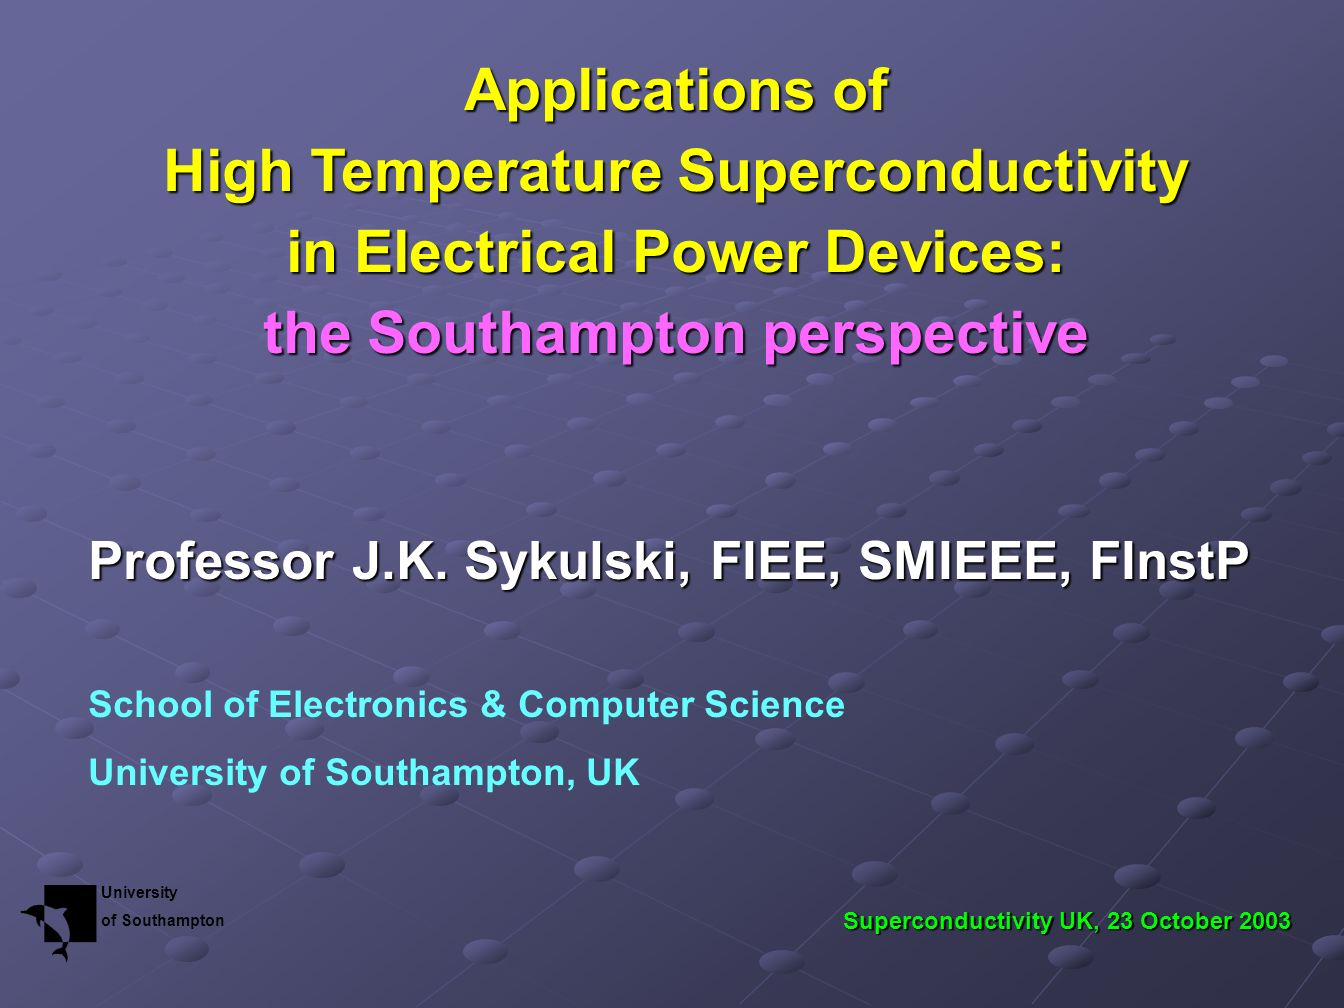 High Temperature Superconductivity in Electrical Power Devices: